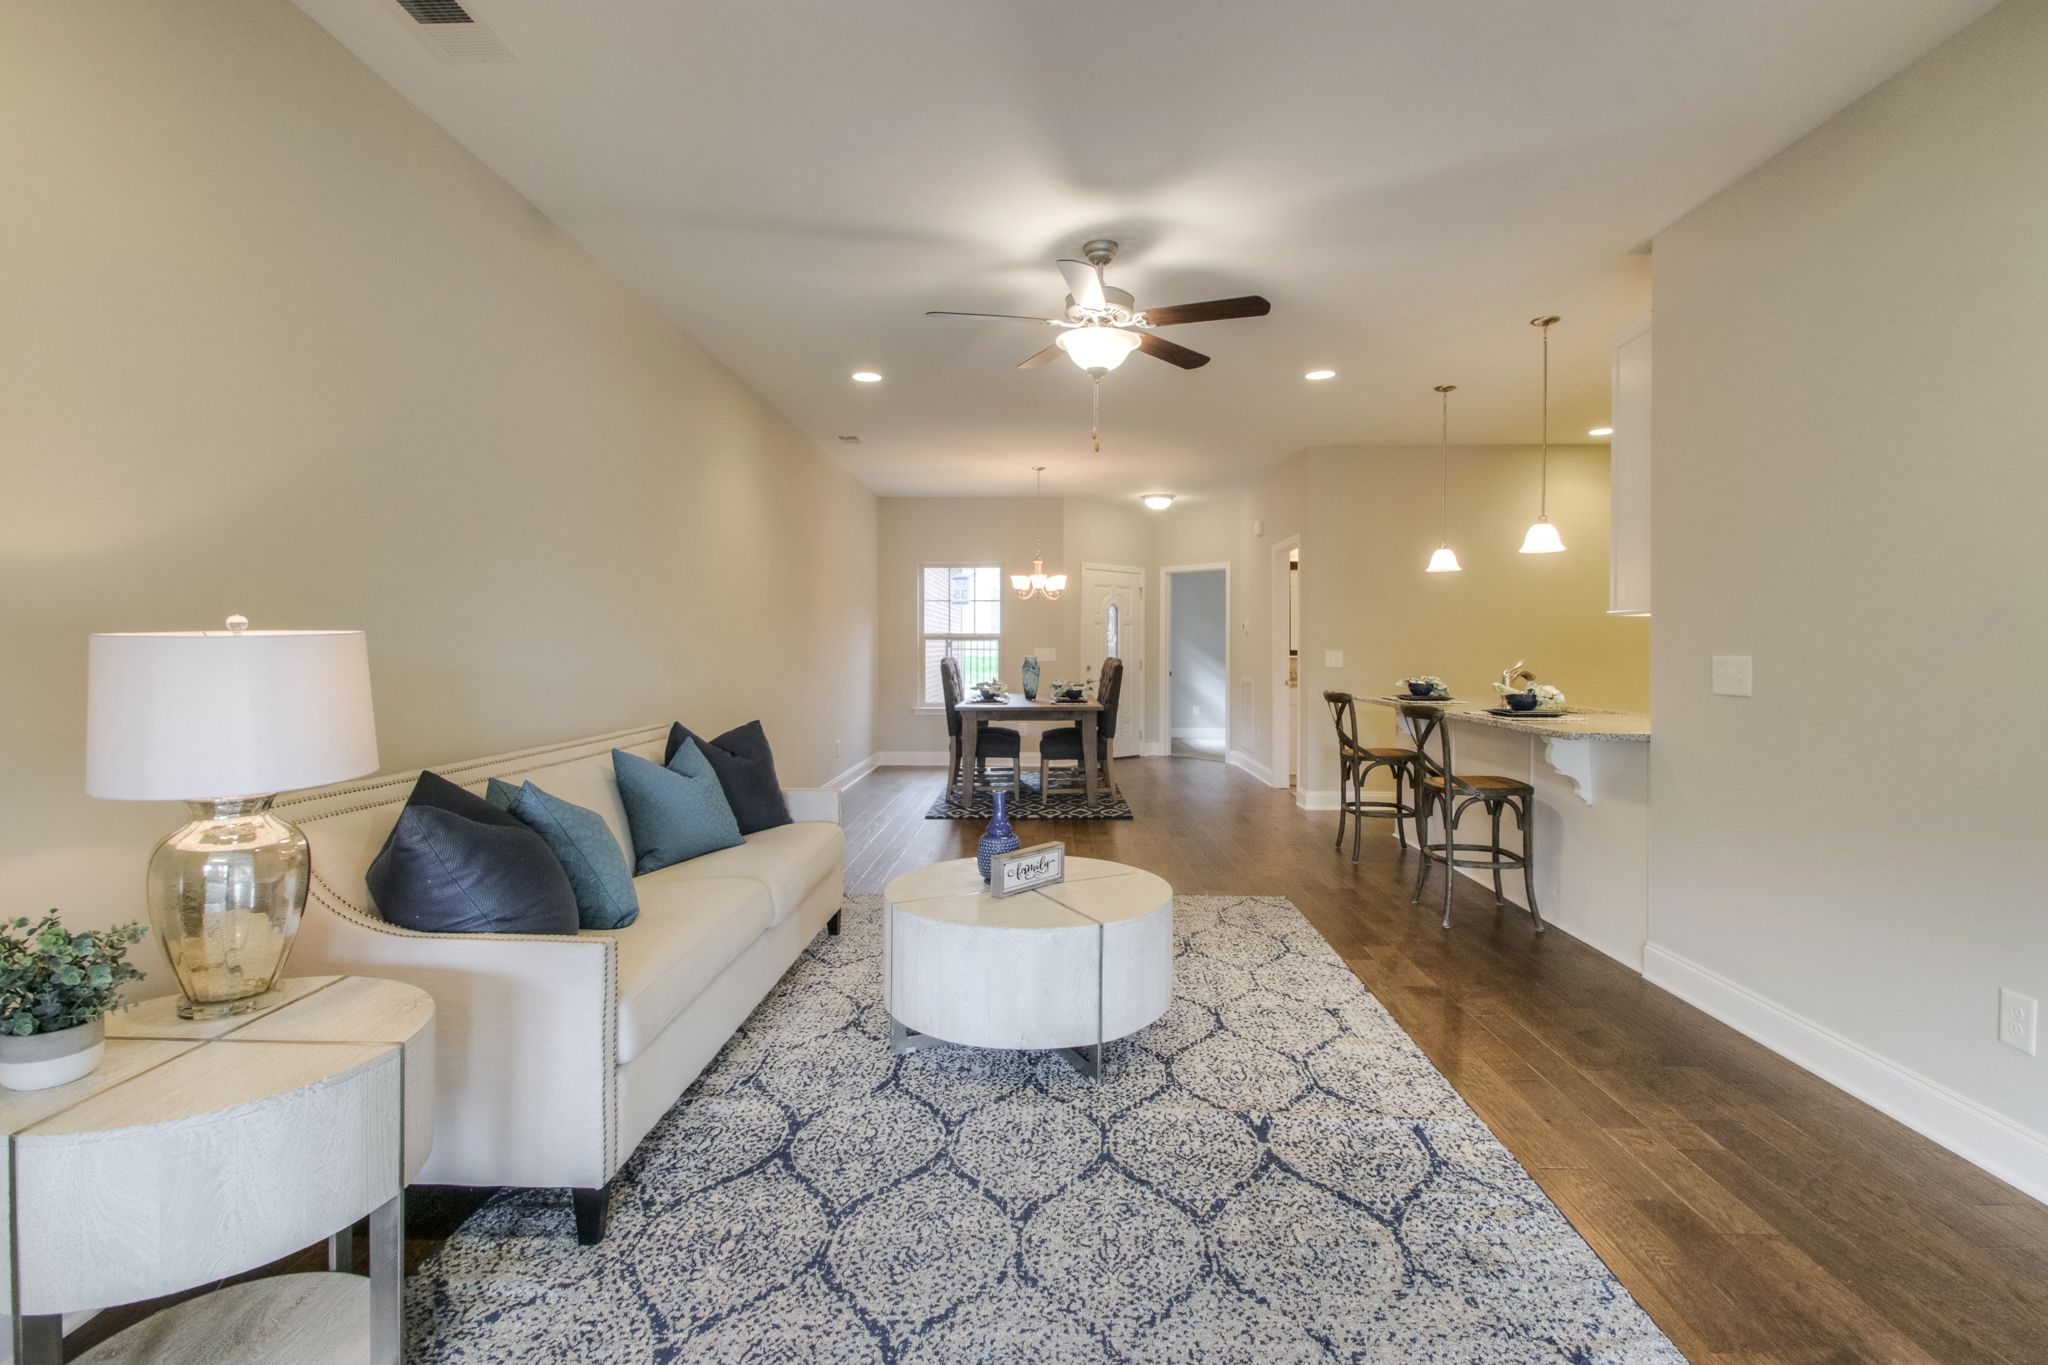 Living Area featured in The Waverleigh Courtyard Cottage By Goodall Homes in Chattanooga, GA